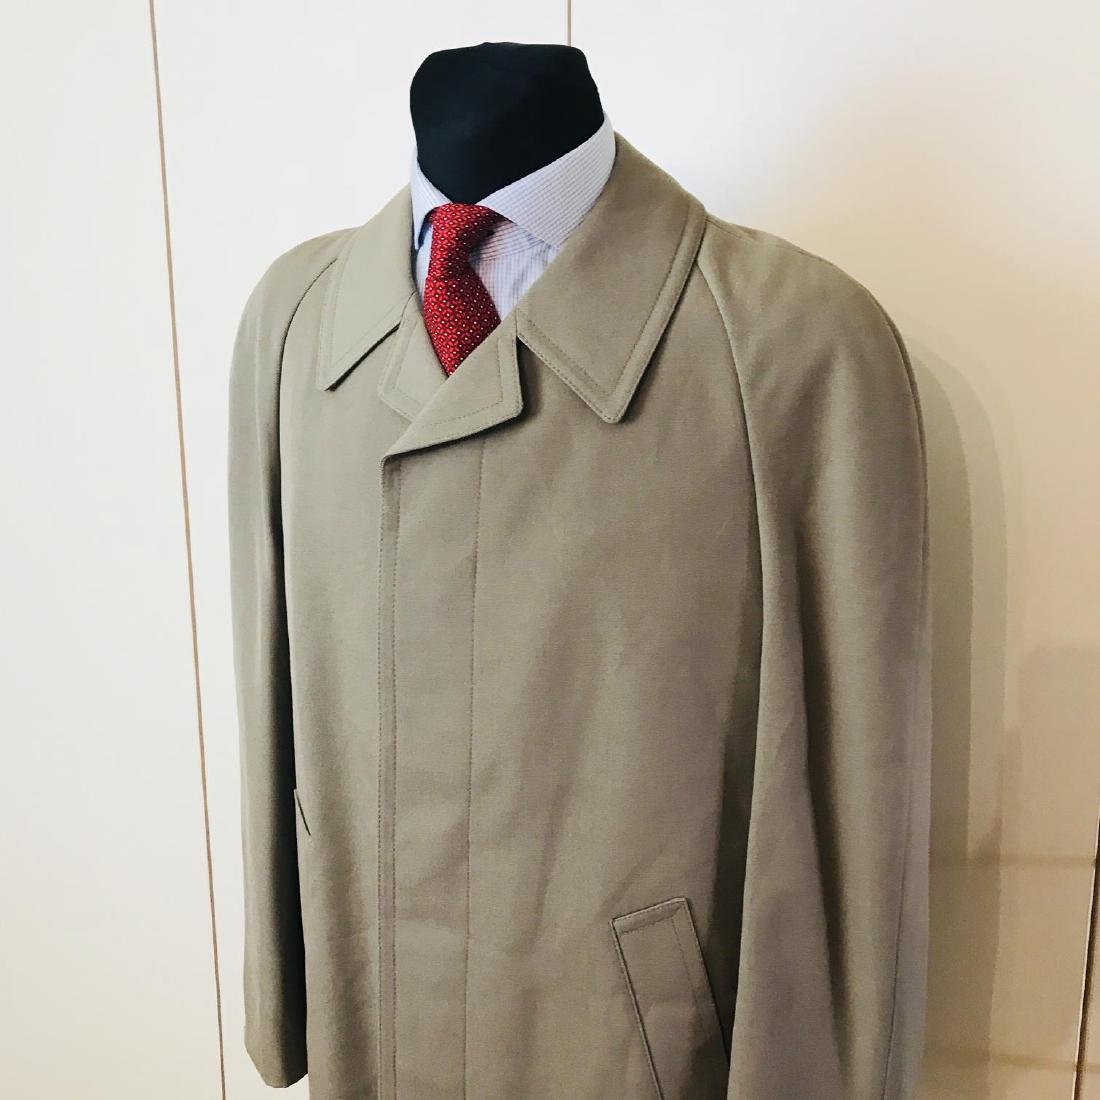 Vintage Men's Trench Coat Size US 38 EUR 48 - 2